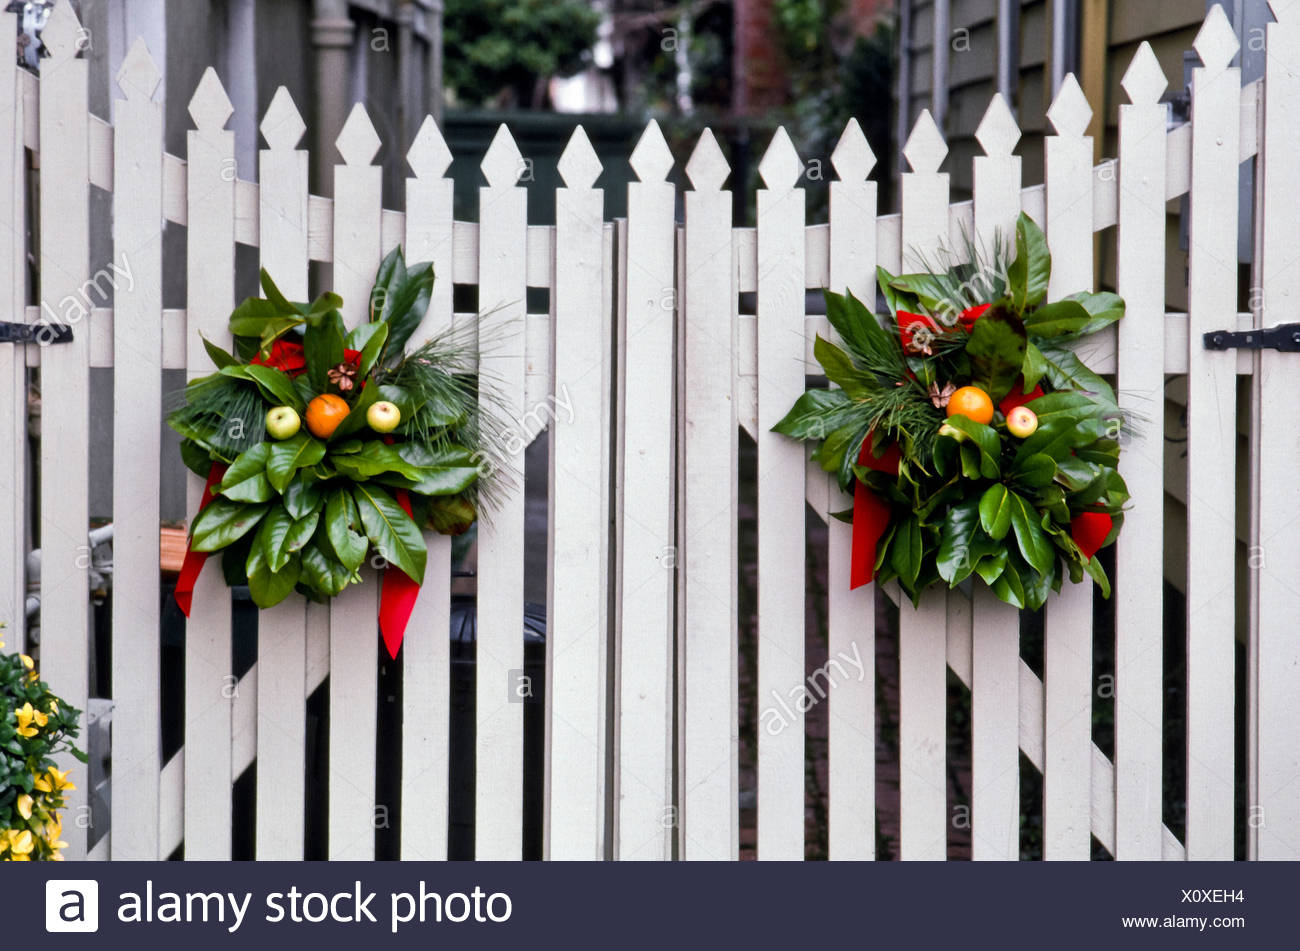 christmas decorations of greenery wreaths decorate on white picket fence gate portsmouth virginia usa - Christmas Fence Decorations